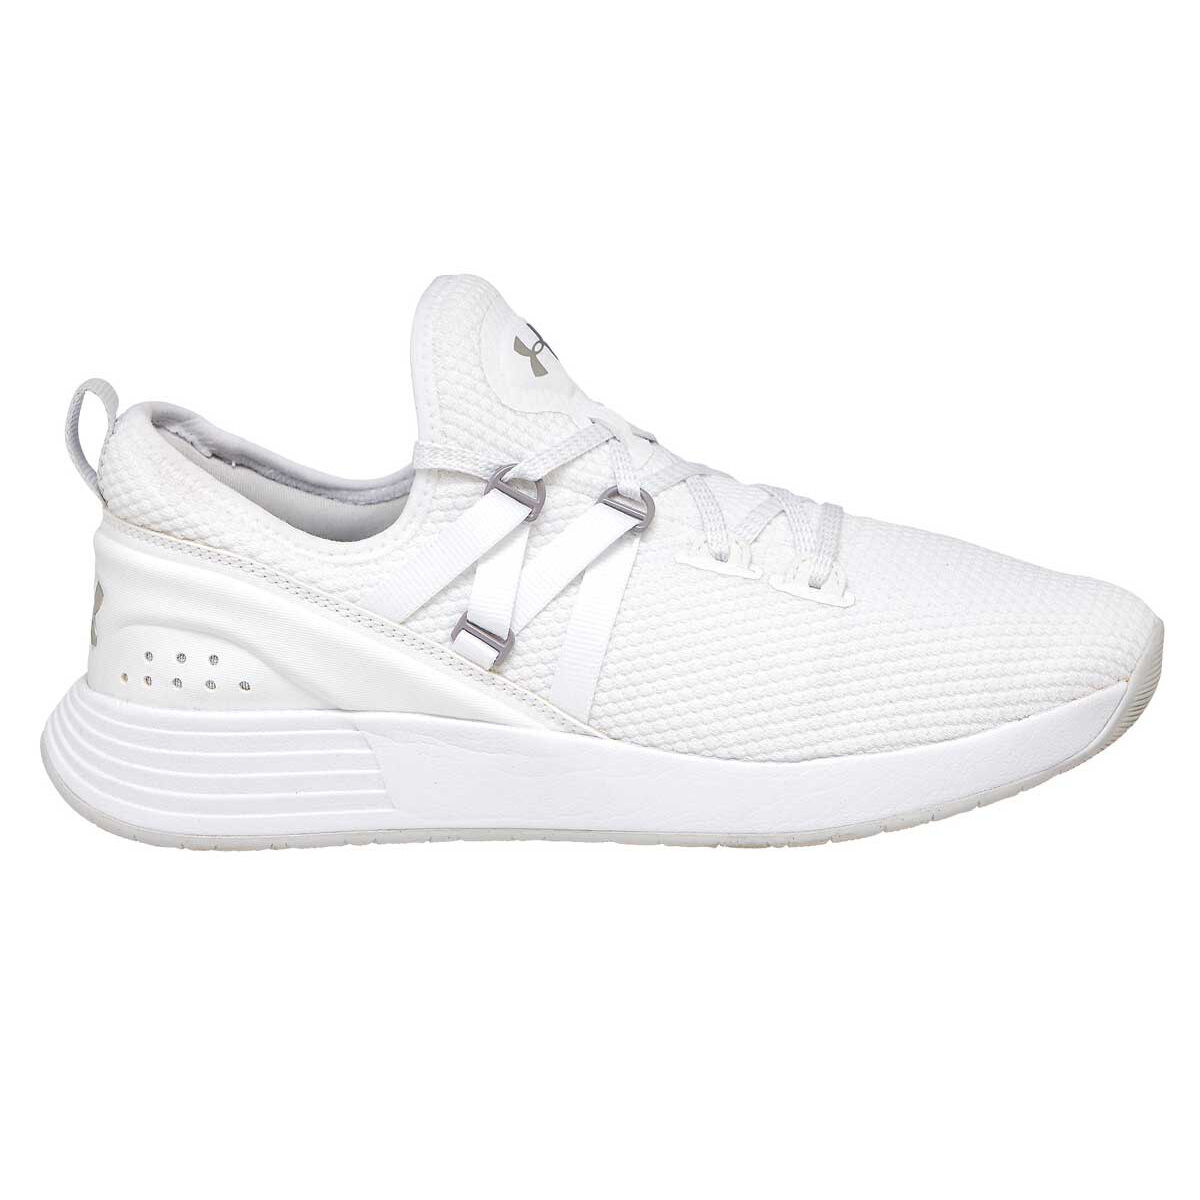 Under Armour Breathe Trainer Womens Training Shoes